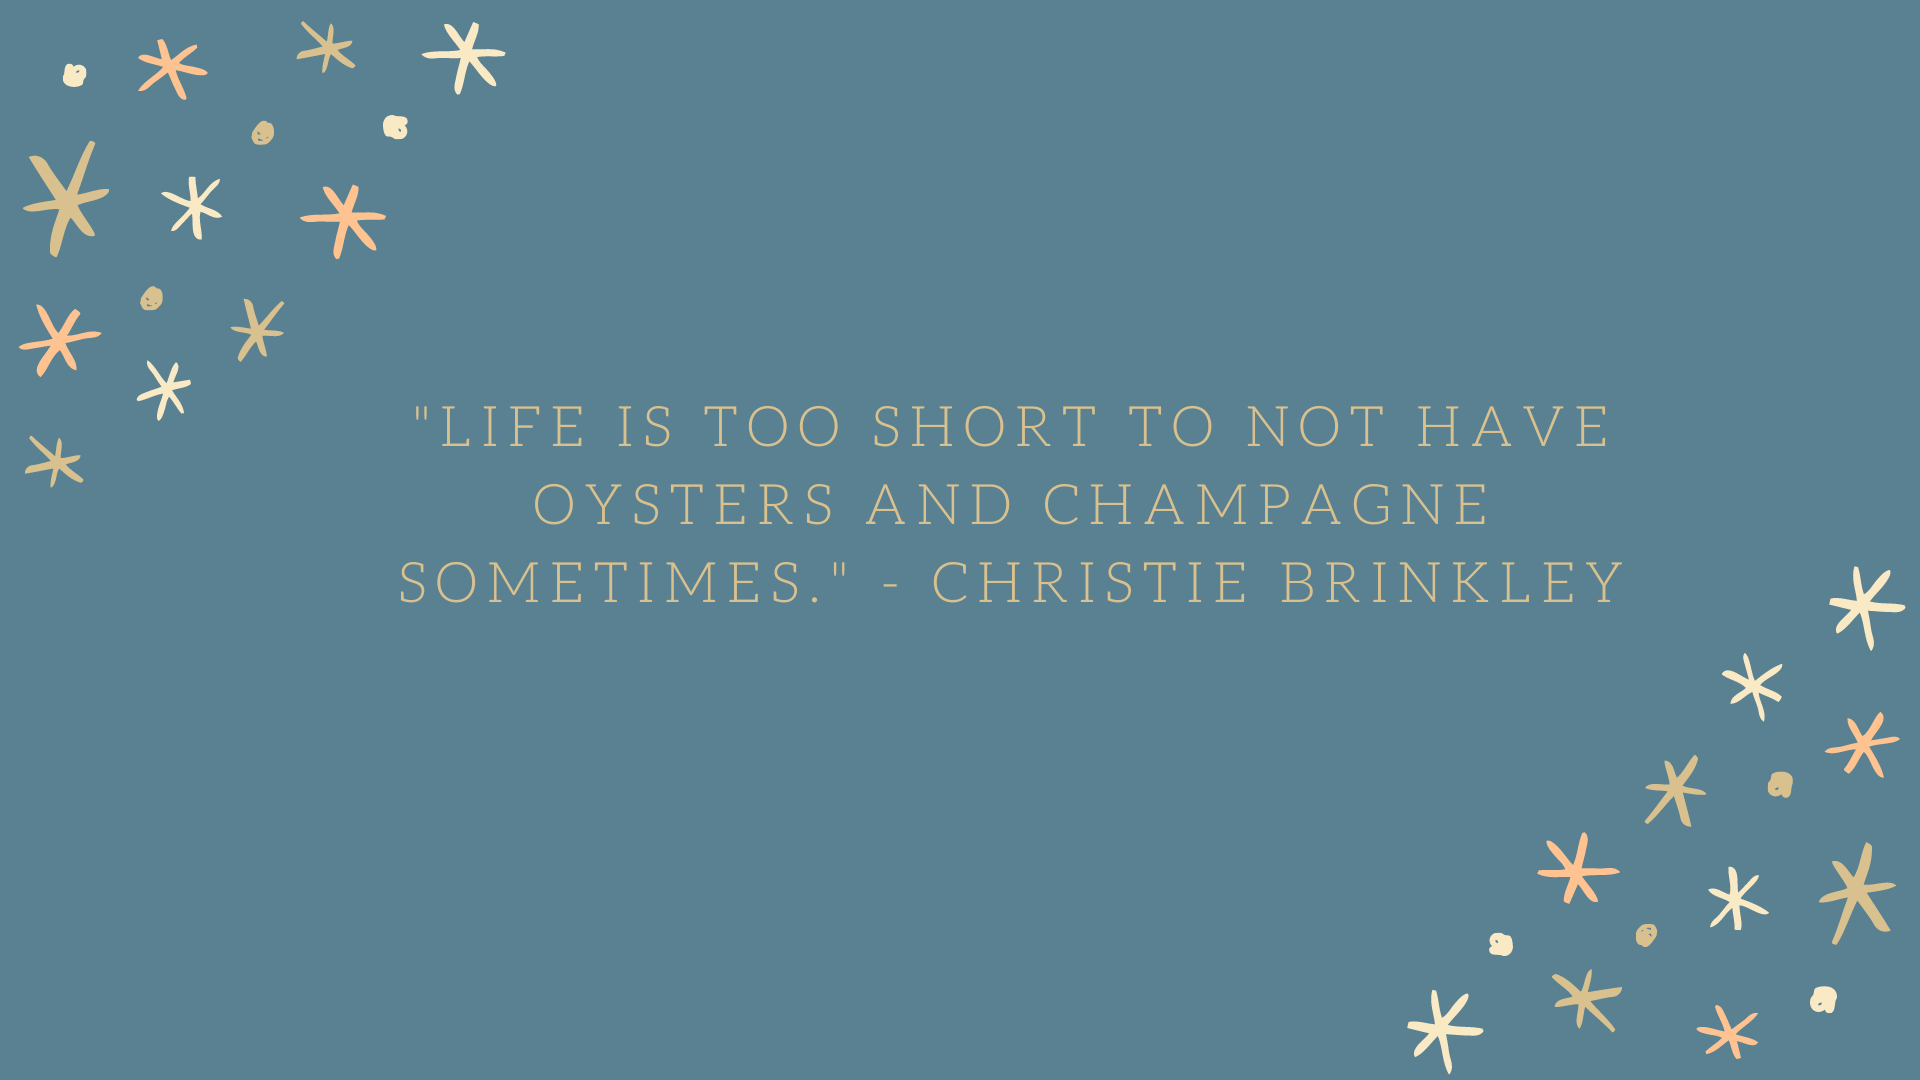 """Life is too short to not have oysters and champagne sometimes."" - Christie Brinkley"